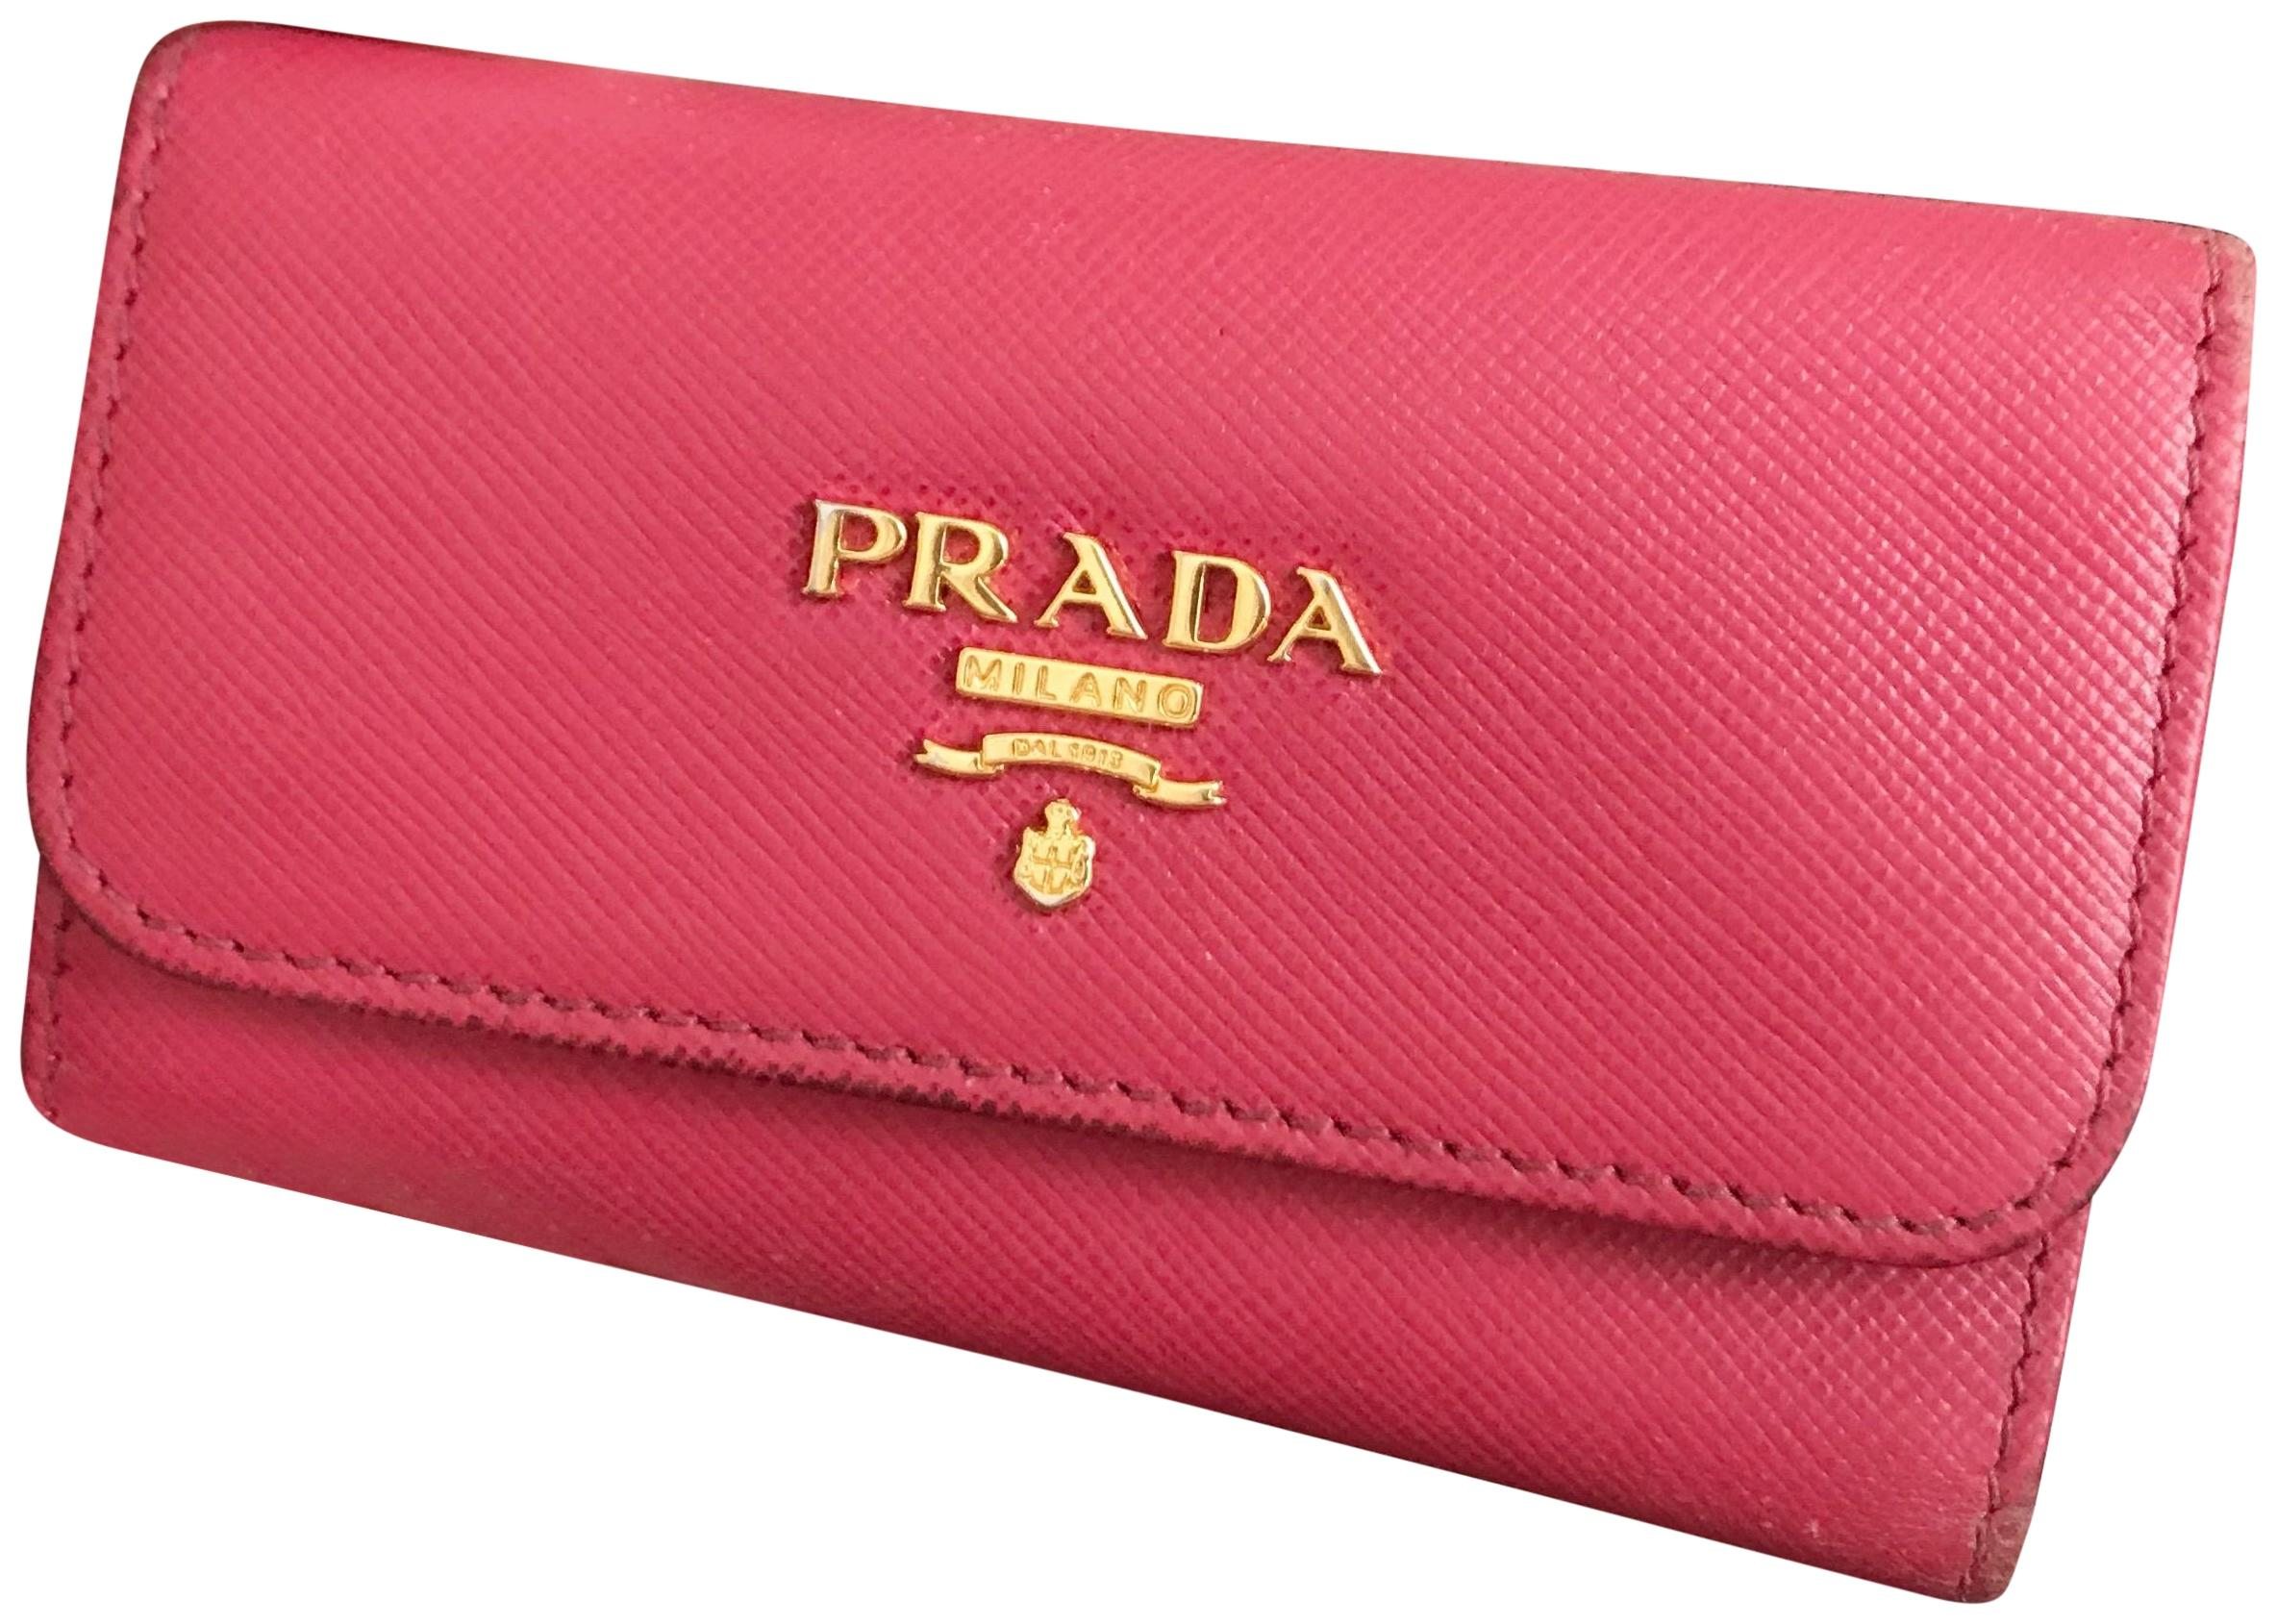 71a23f580e02 ... reduced prada prada peony pink 6 key holder wallet keychain 01ef0 3e241